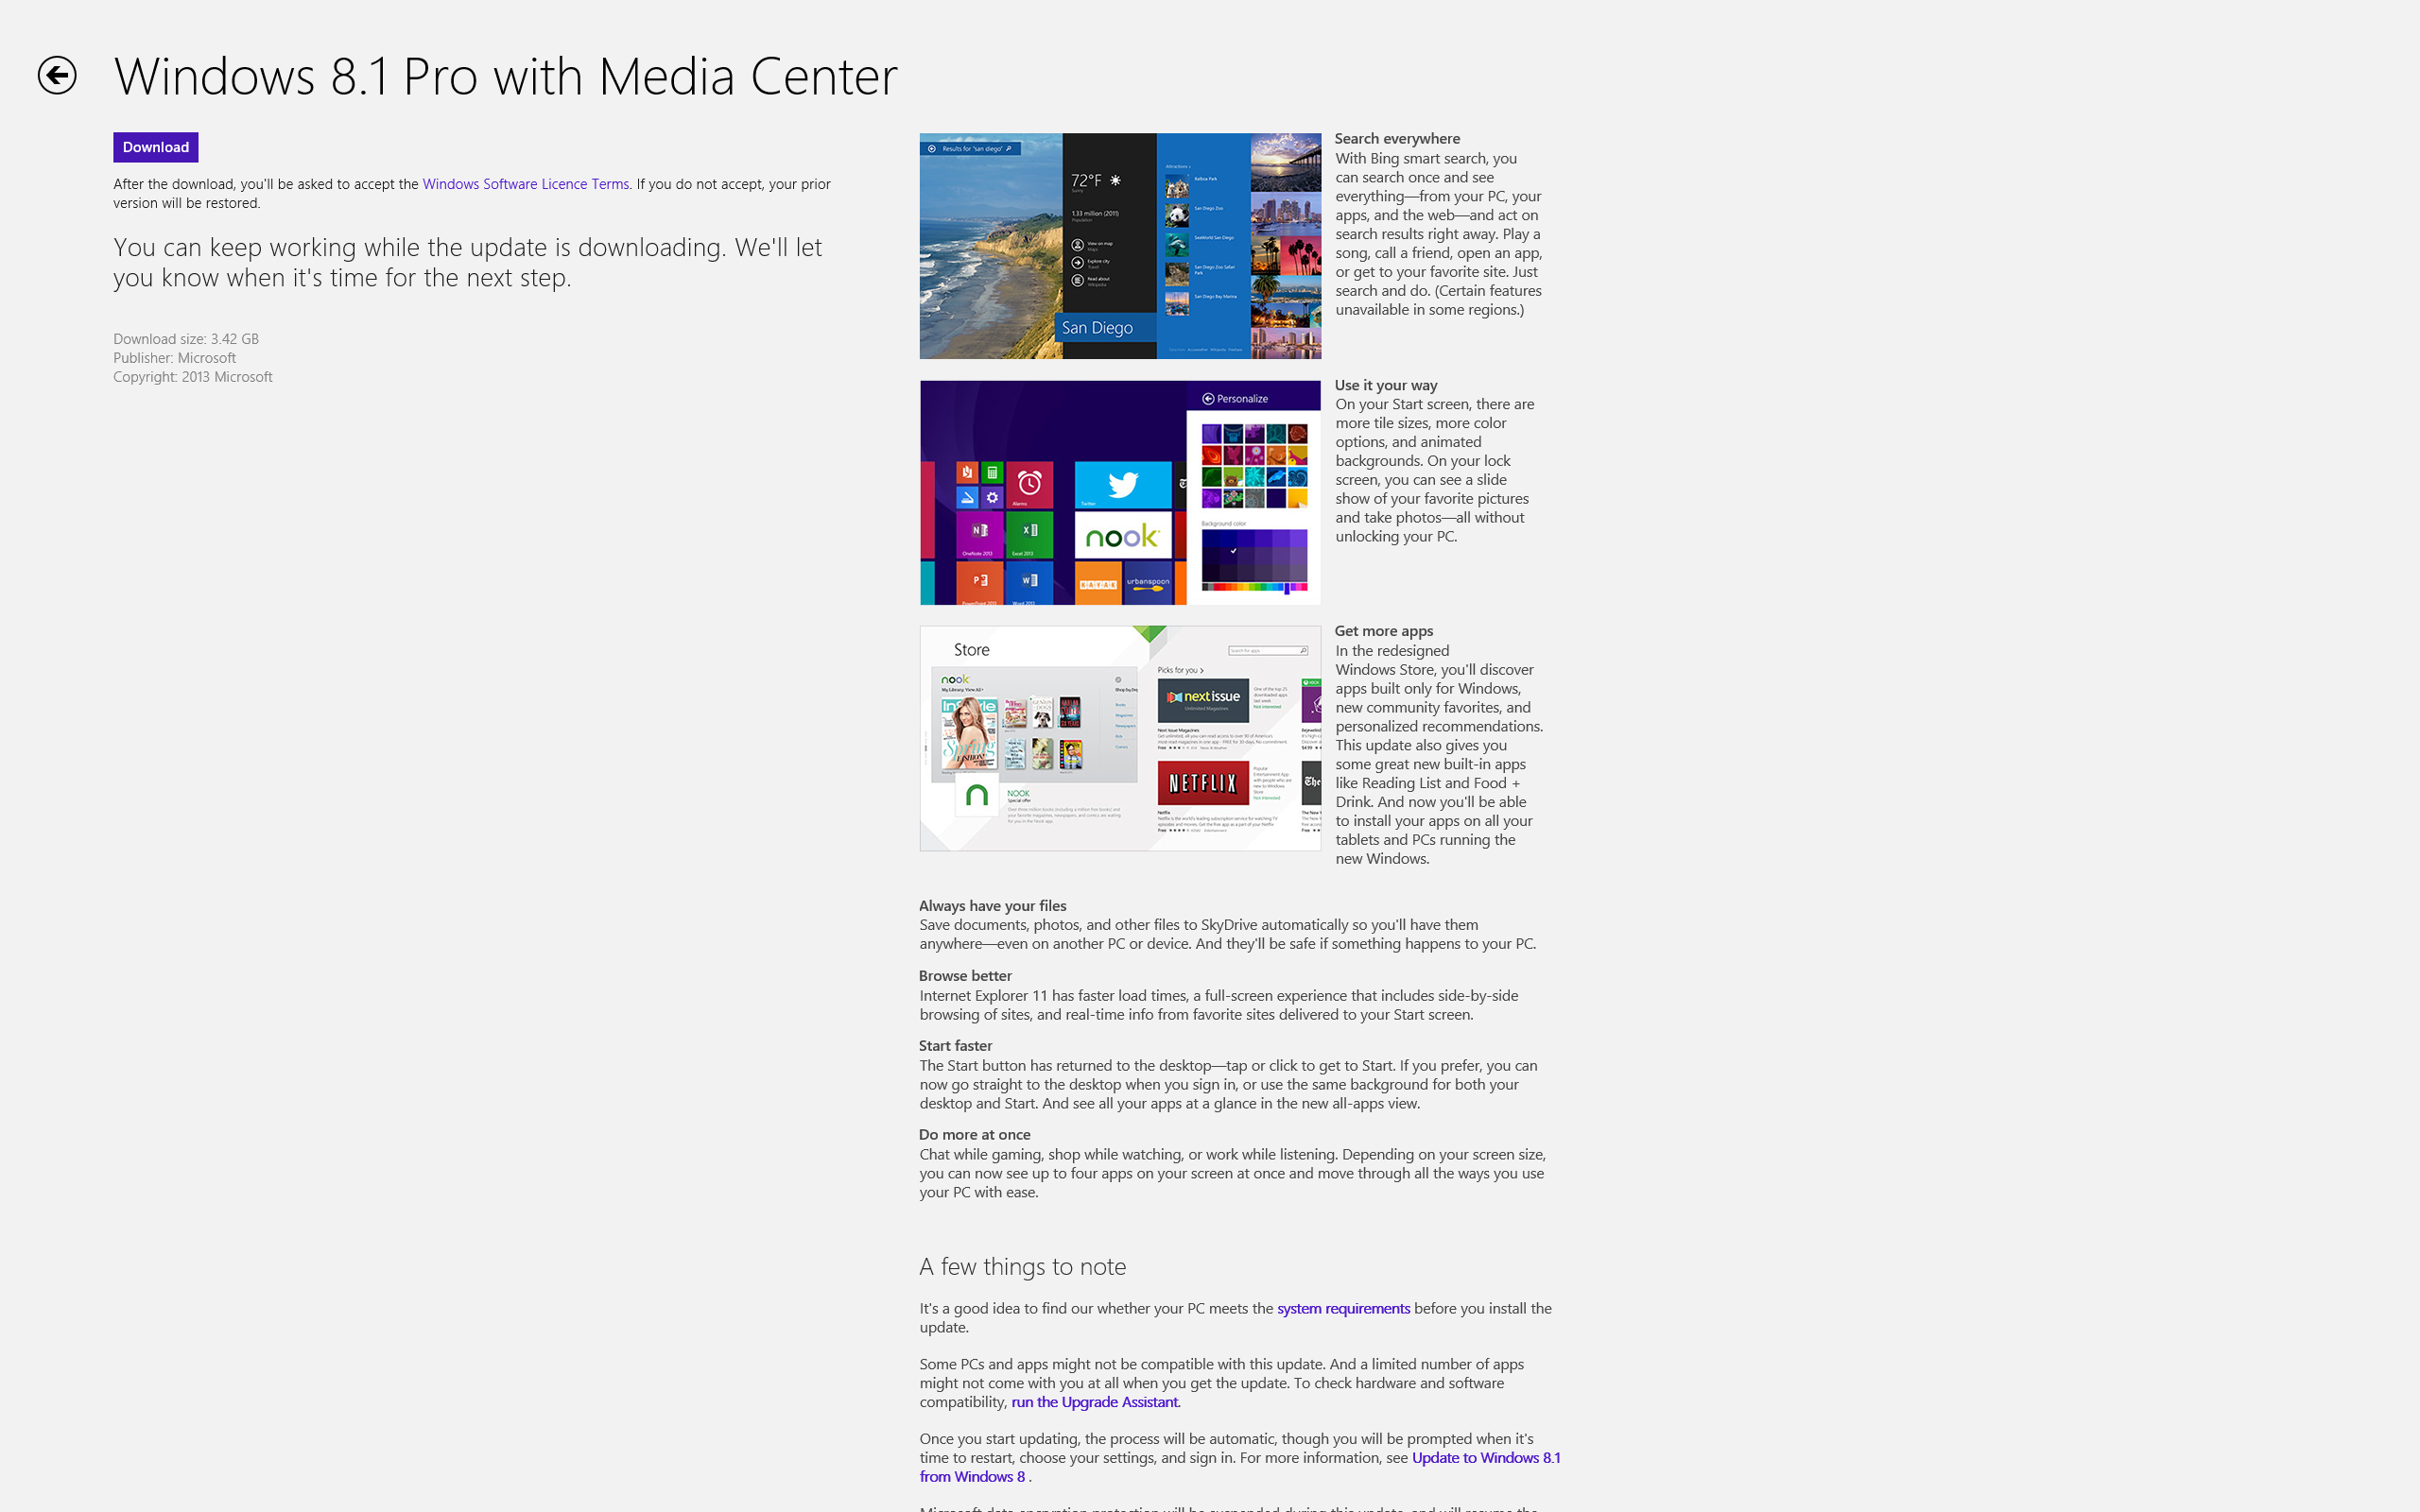 Windows 8.1 Ready to Download via the Windows Store